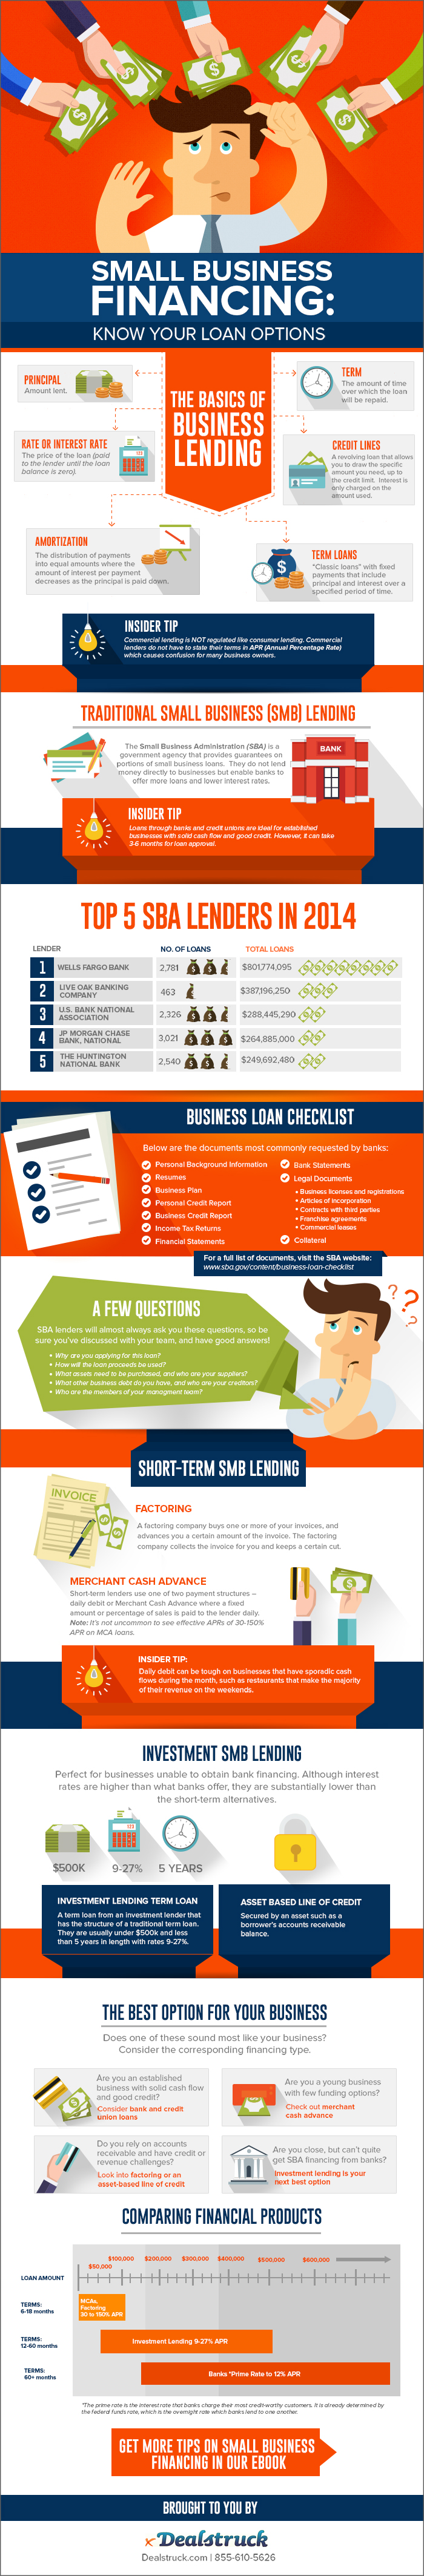 Small Business Financing: Know Your Loan Options